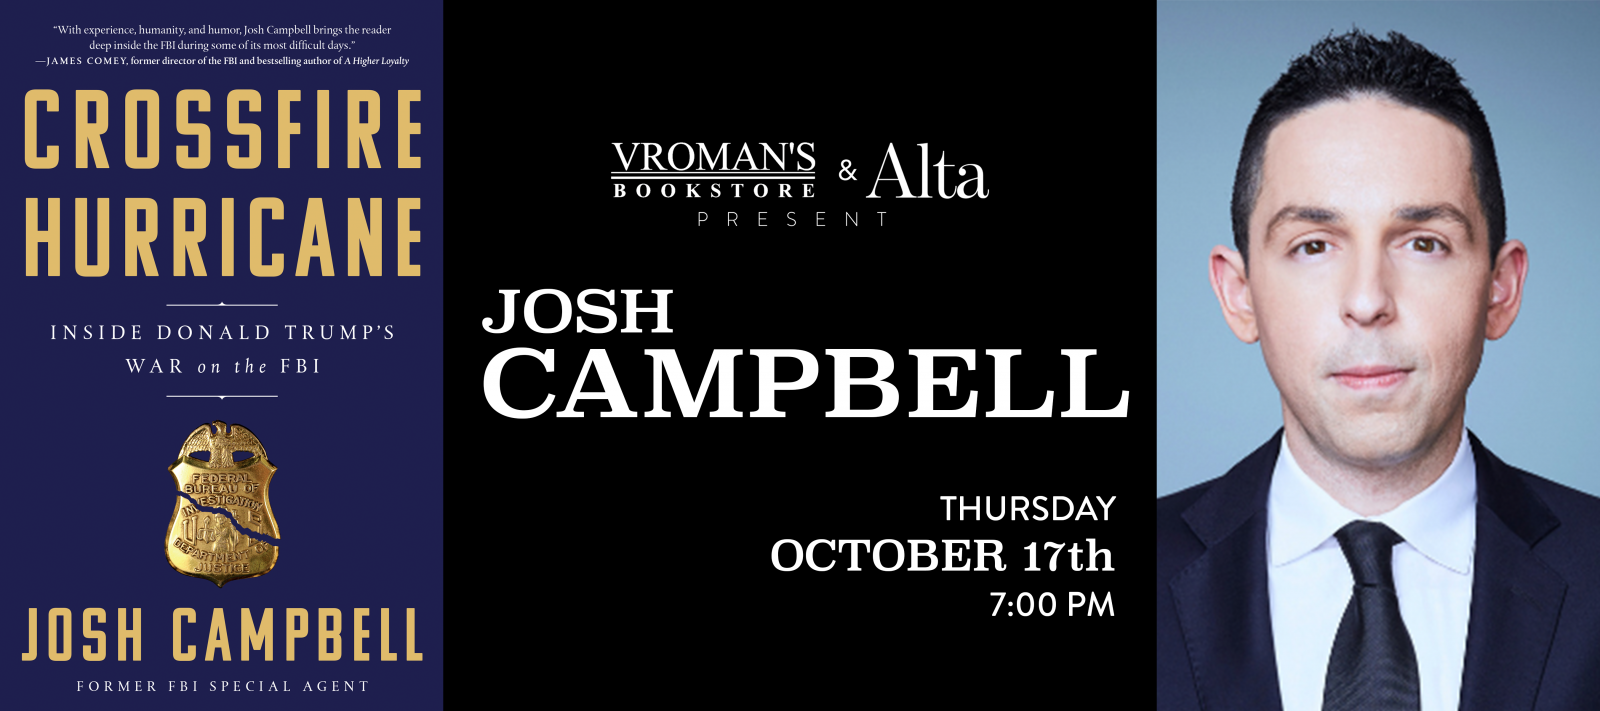 Josh Campbell book signing Thursday October 17 at 7pm